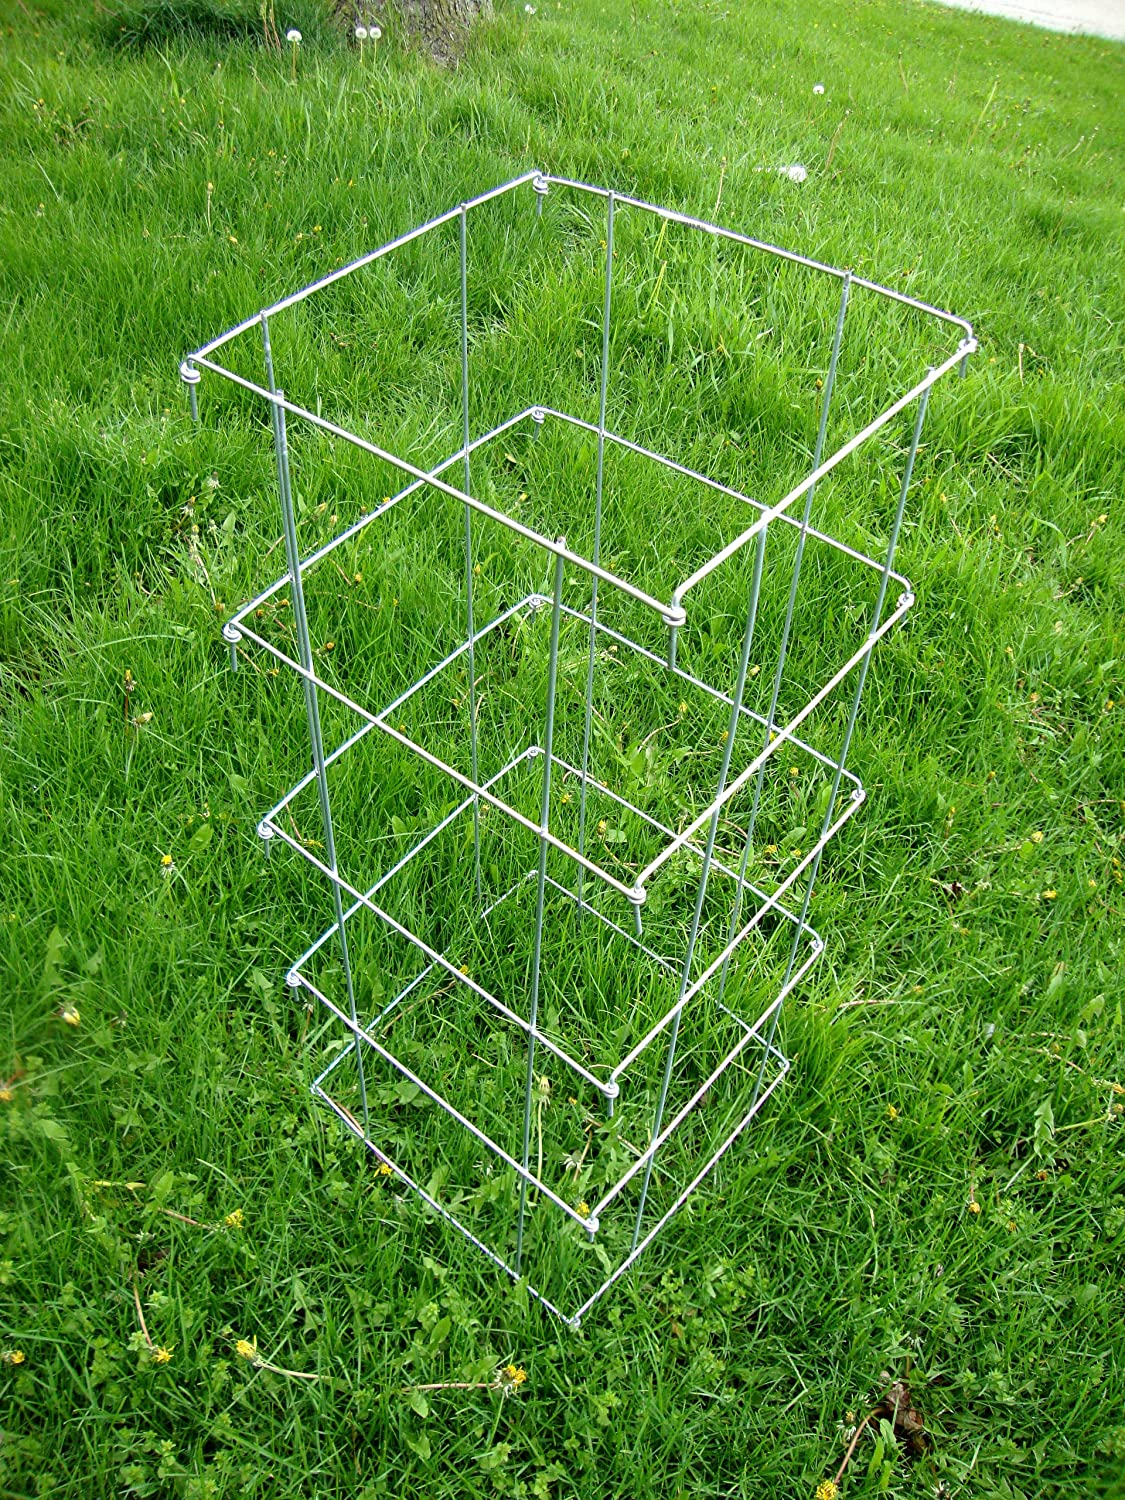 Cassie s Cages- Heavy Duty Square Collapsible Tomato Cage 8400X